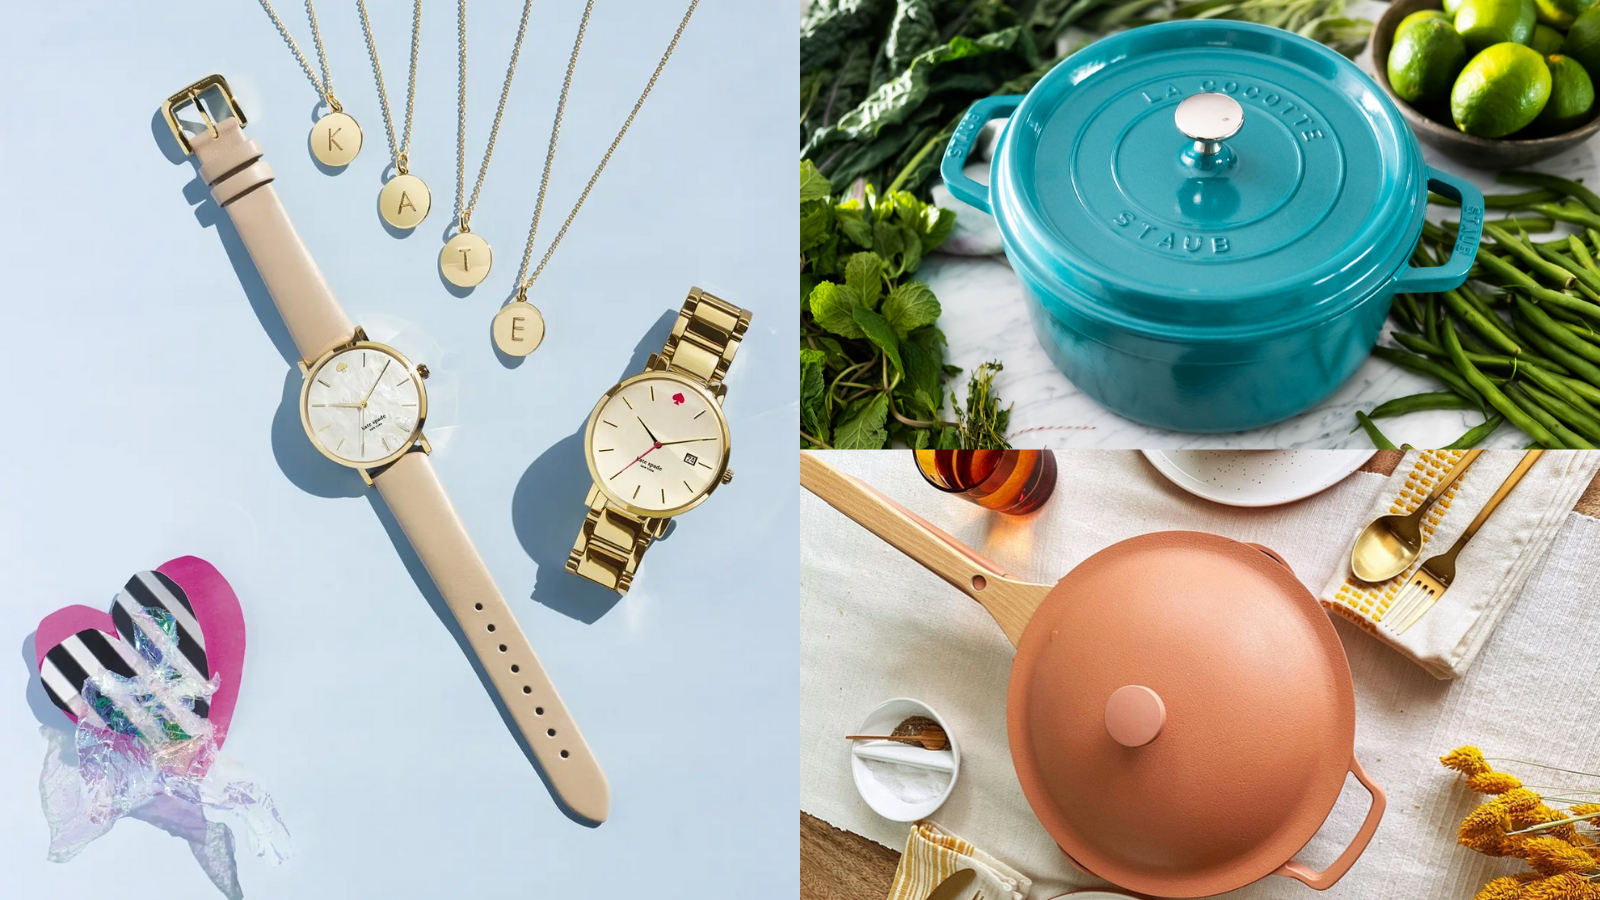 60 best gifts for mom for 2020